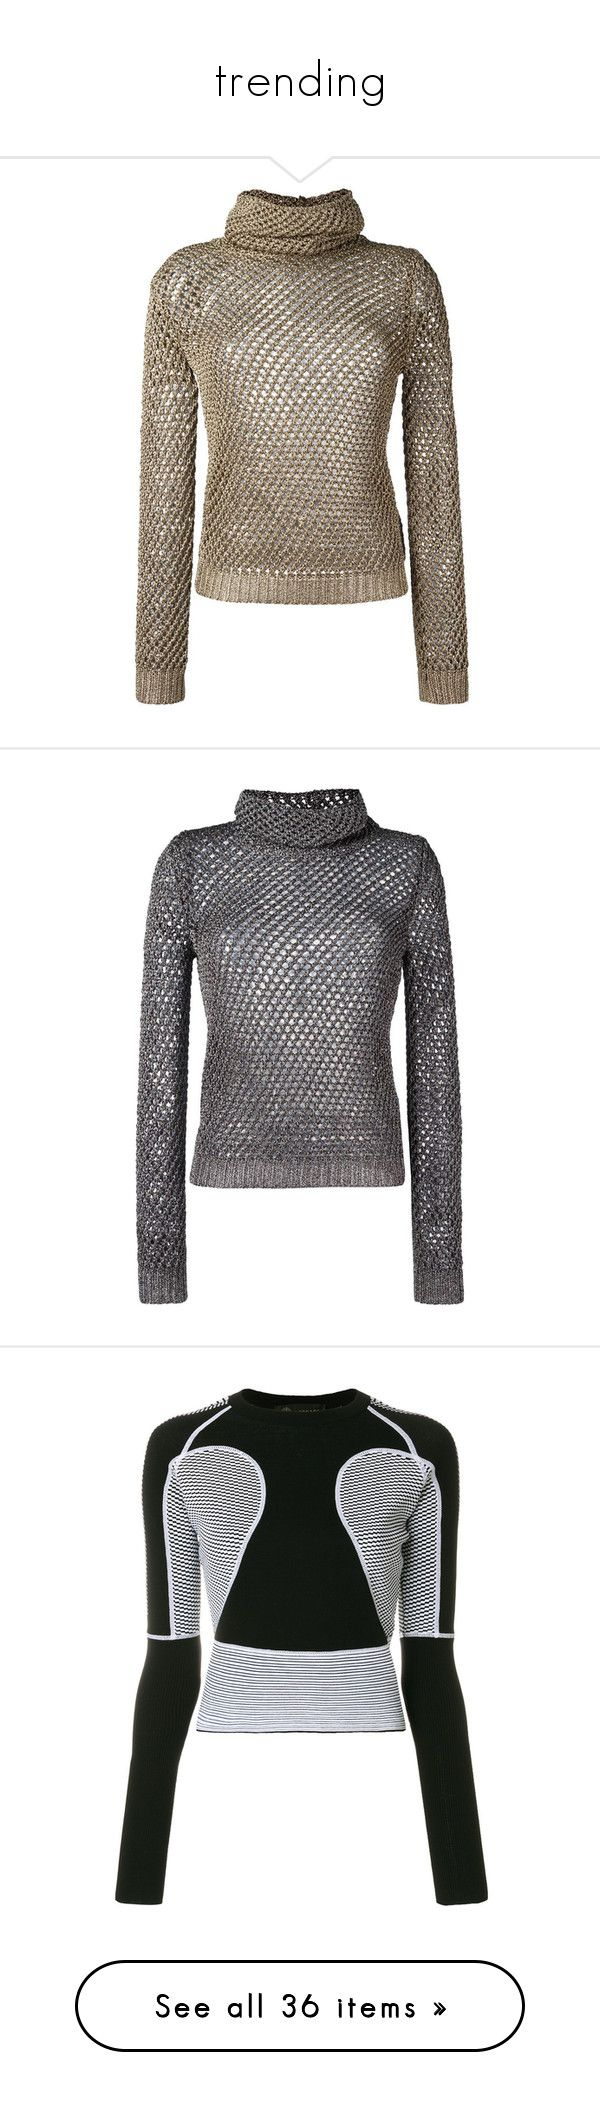 """""""trending"""" by jeniferkcarsrud ❤ liked on Polyvore featuring tops, sweaters, valentino, grey, long sleeve tops, extra long sleeve sweater, jumpers sweaters, grey jumper, gray sweater and metallic"""